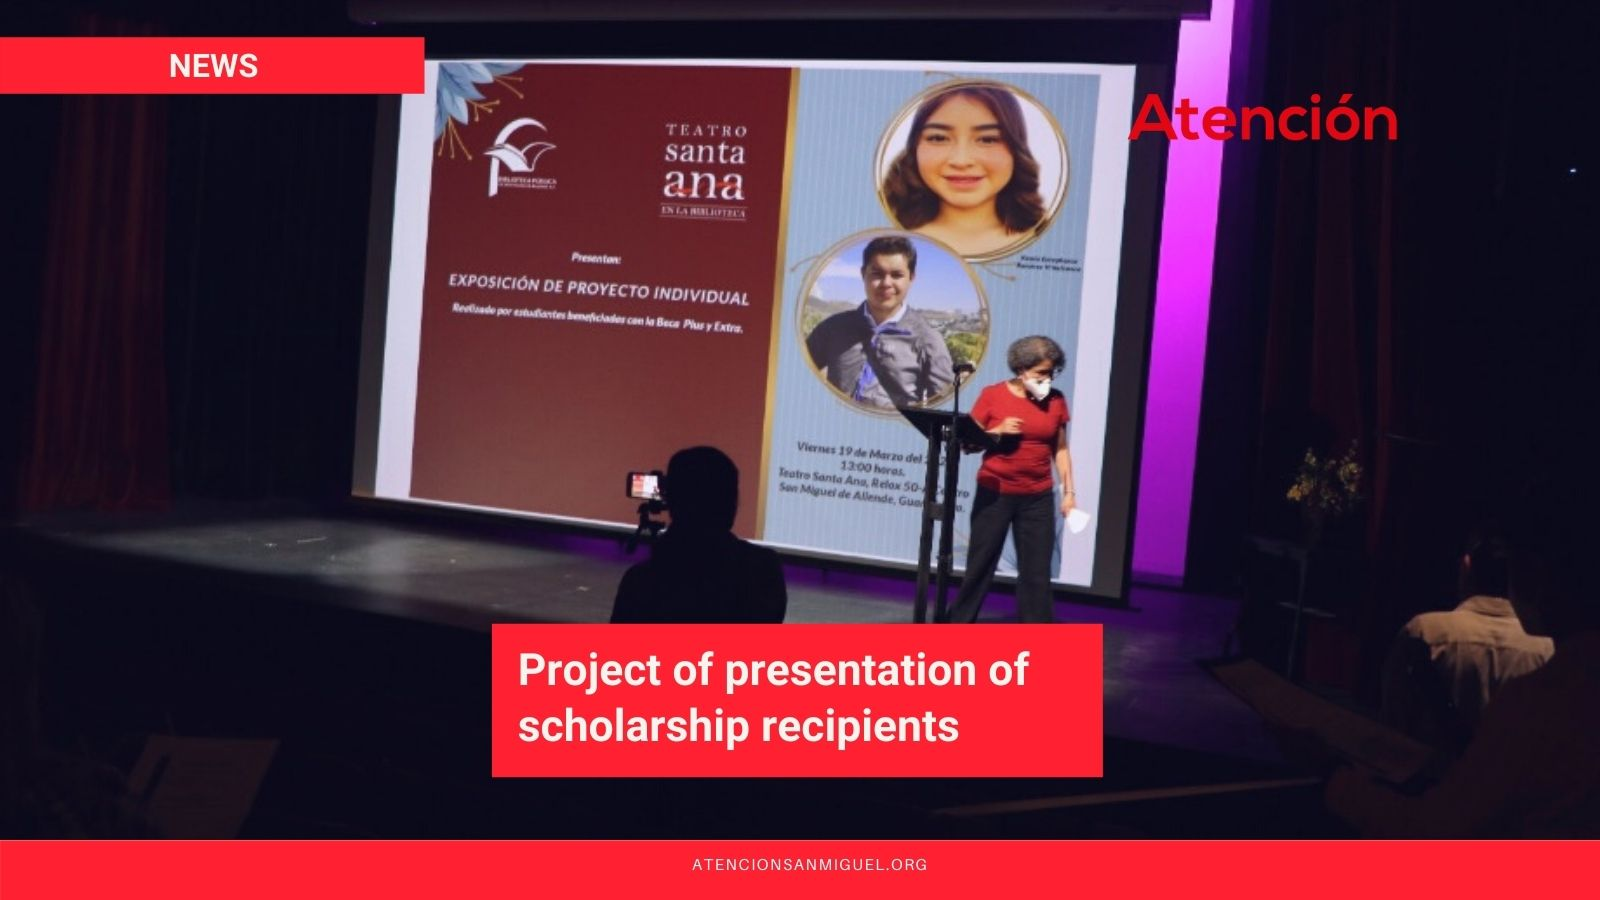 Project-of-presentation-of-scholarship-recipients.jpg